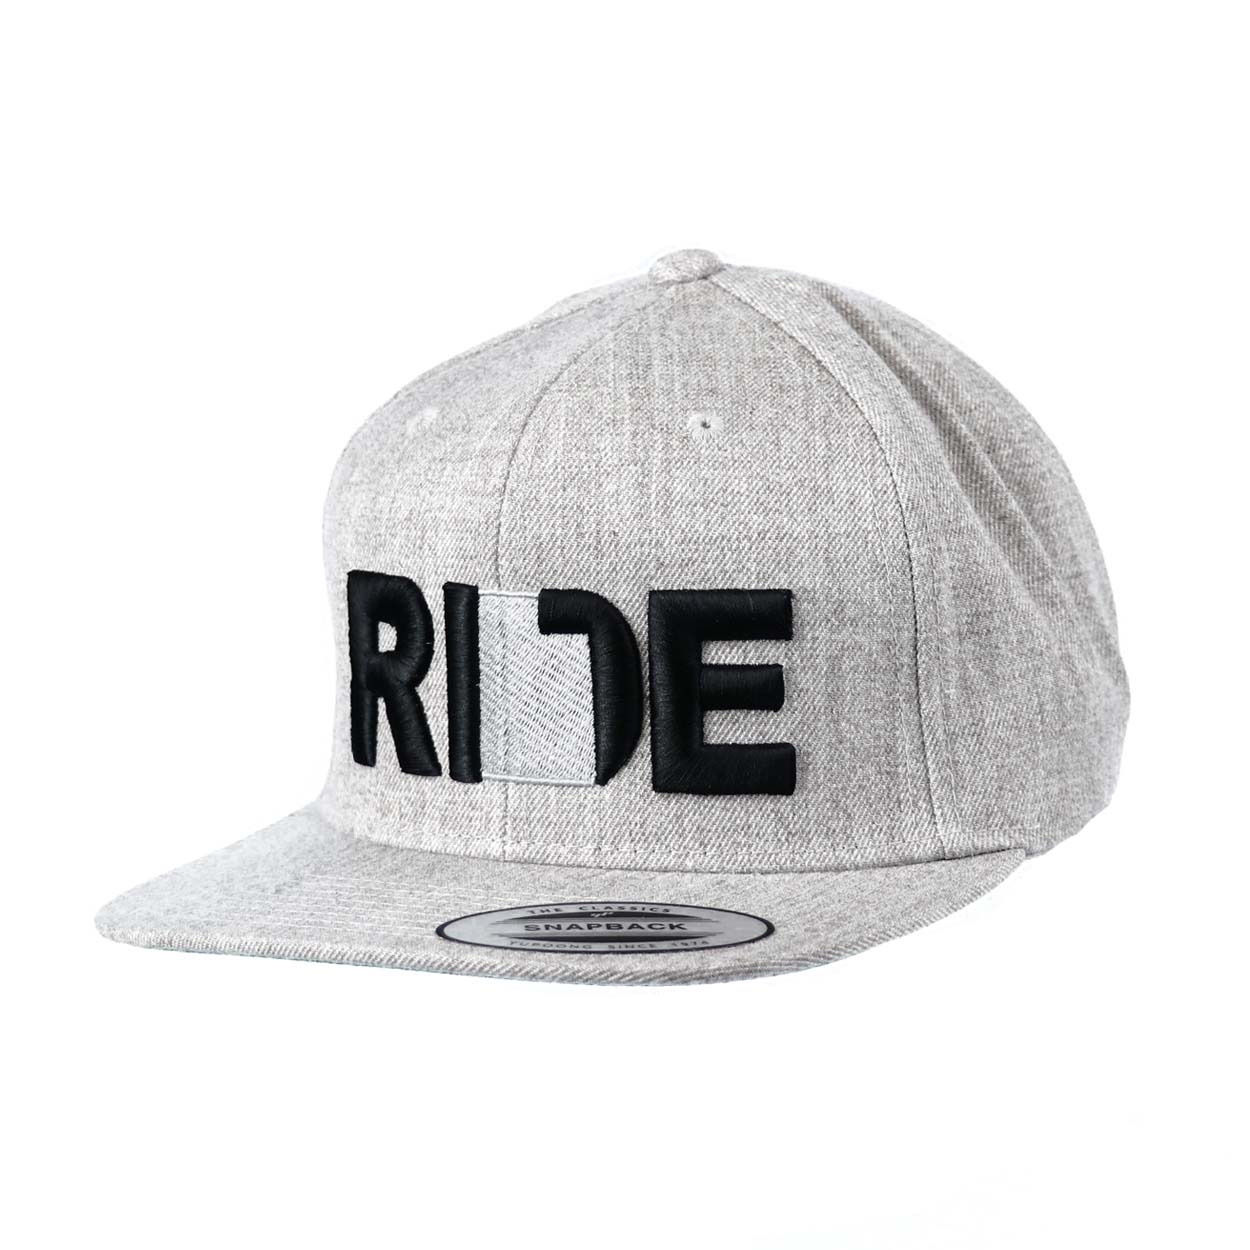 Ride Utah Classic Embroidered  Snapback Flat Brim Hat Gray/Black